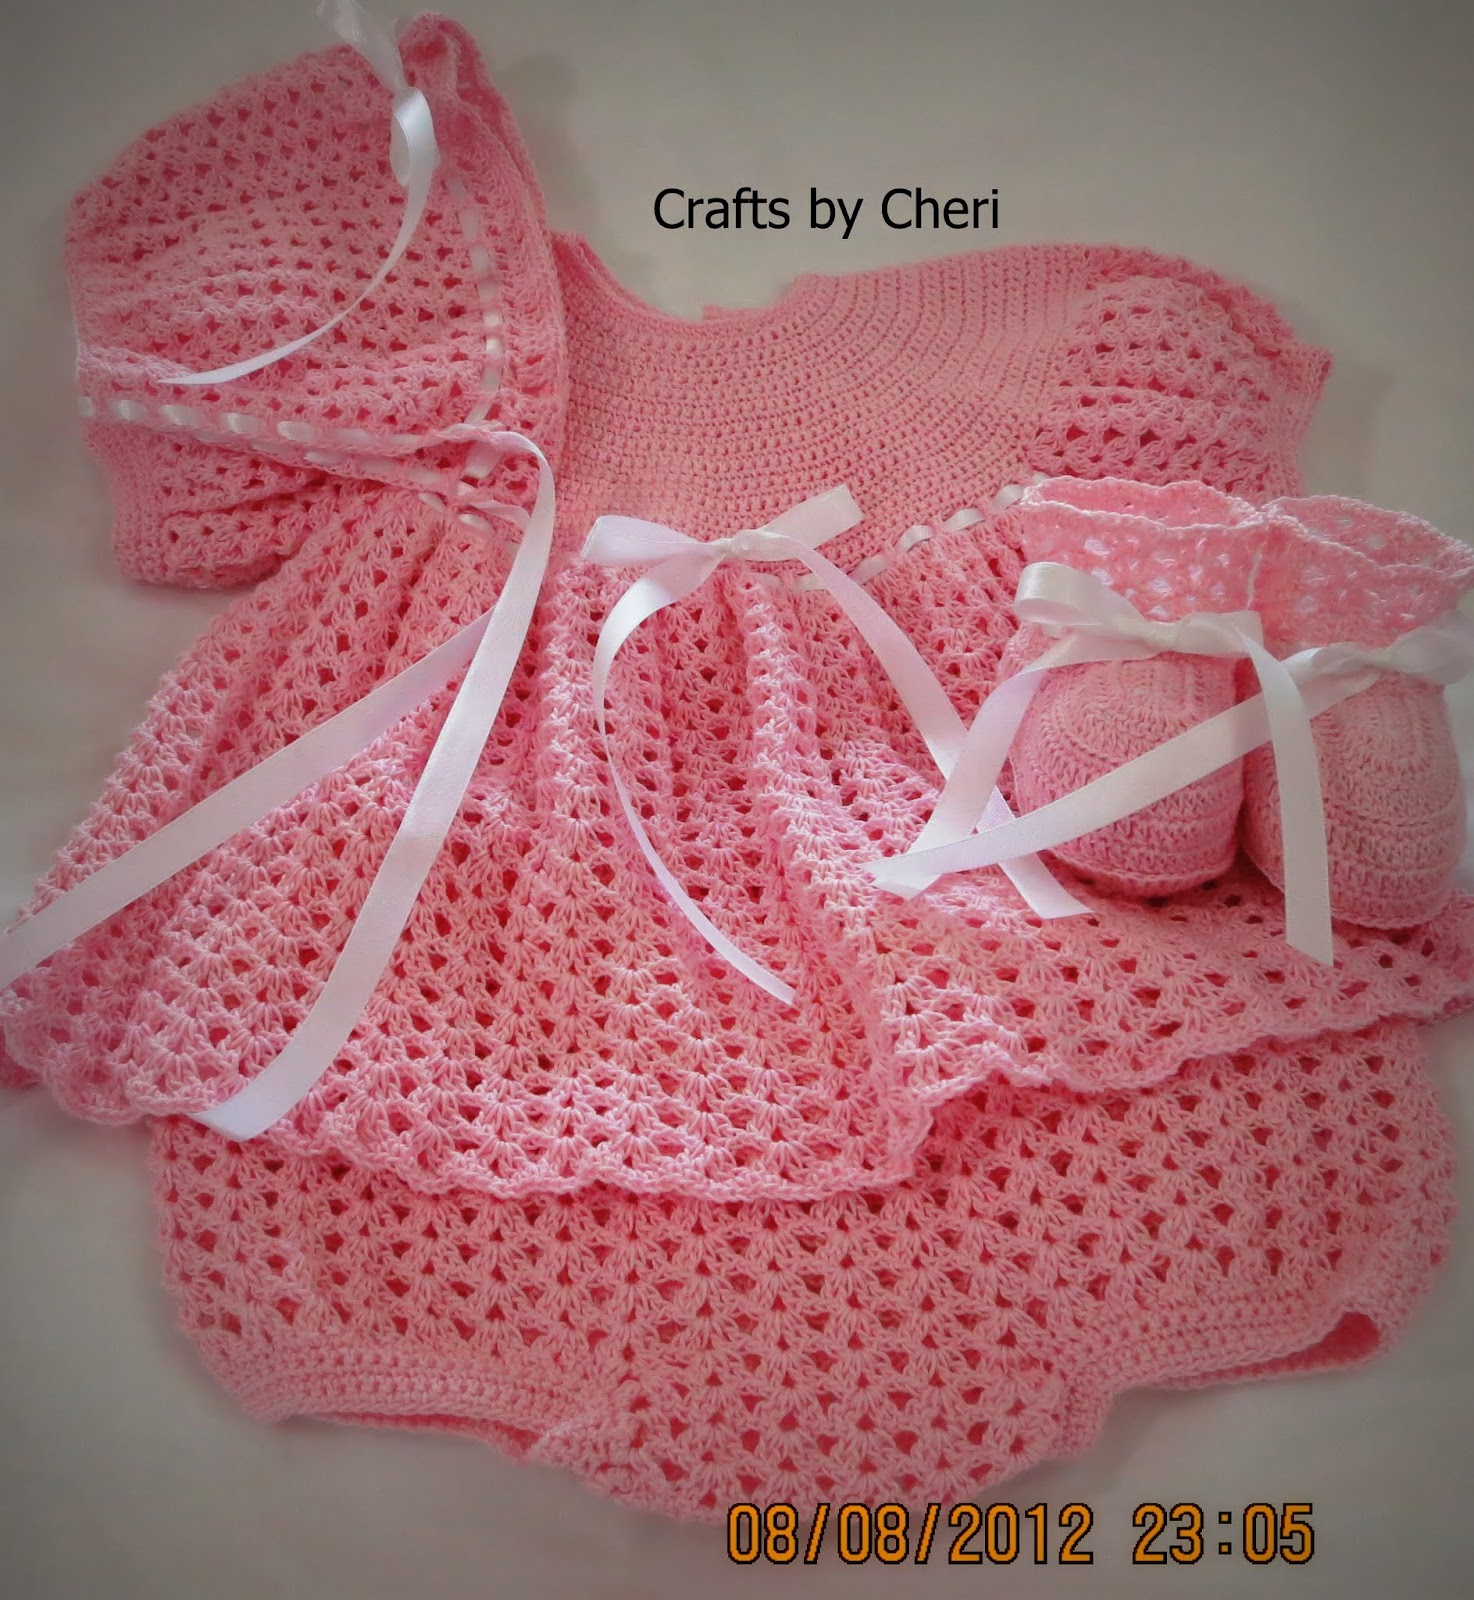 Cheris Crochet Baby or reborn baby doll clothing or ...